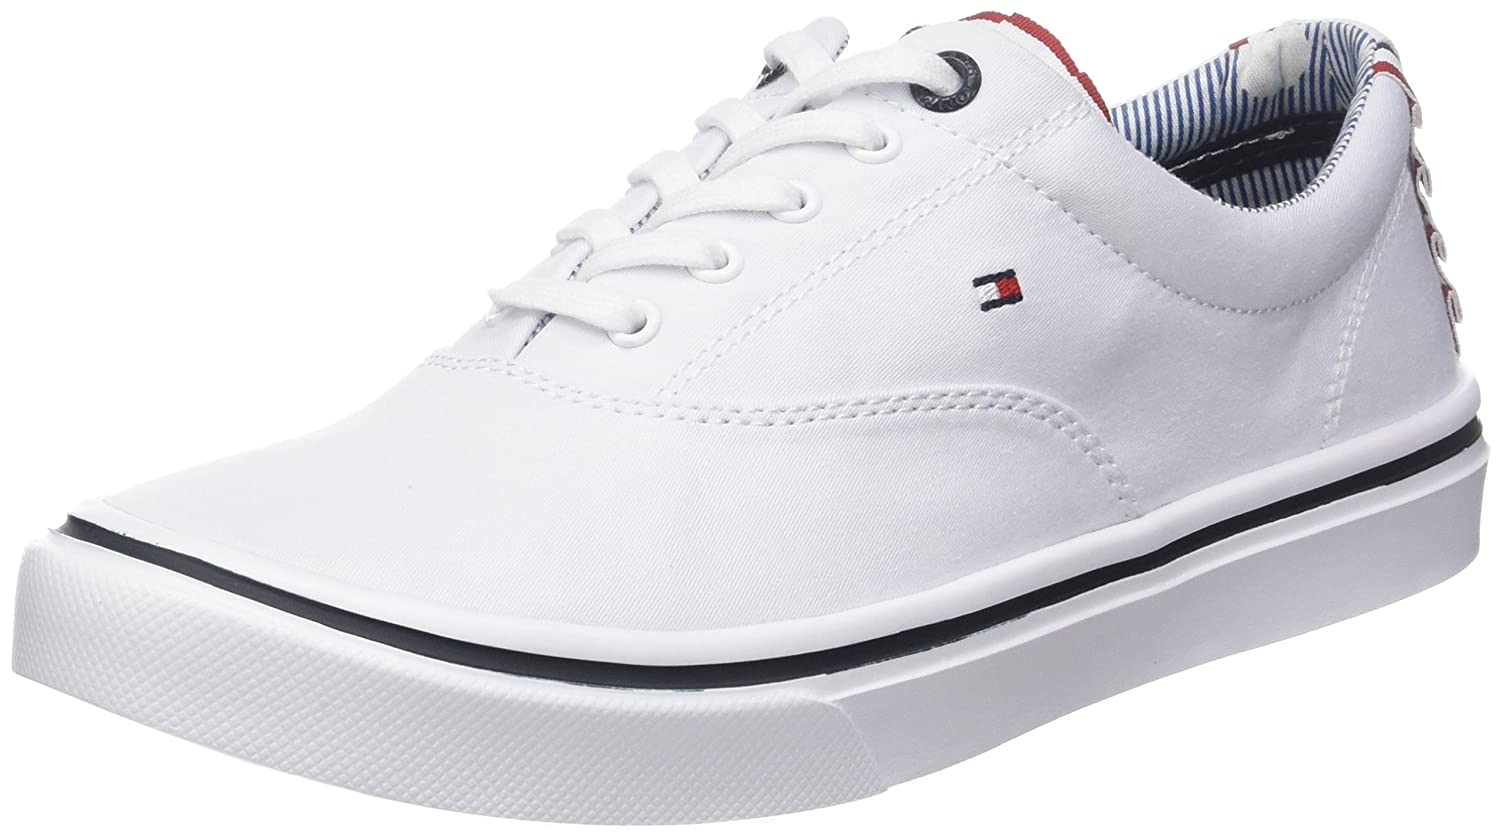 Tommy Hilfiger Textile Light Weight Sneaker, Zapatillas para Mujer 41 EU Blanco (White 100)